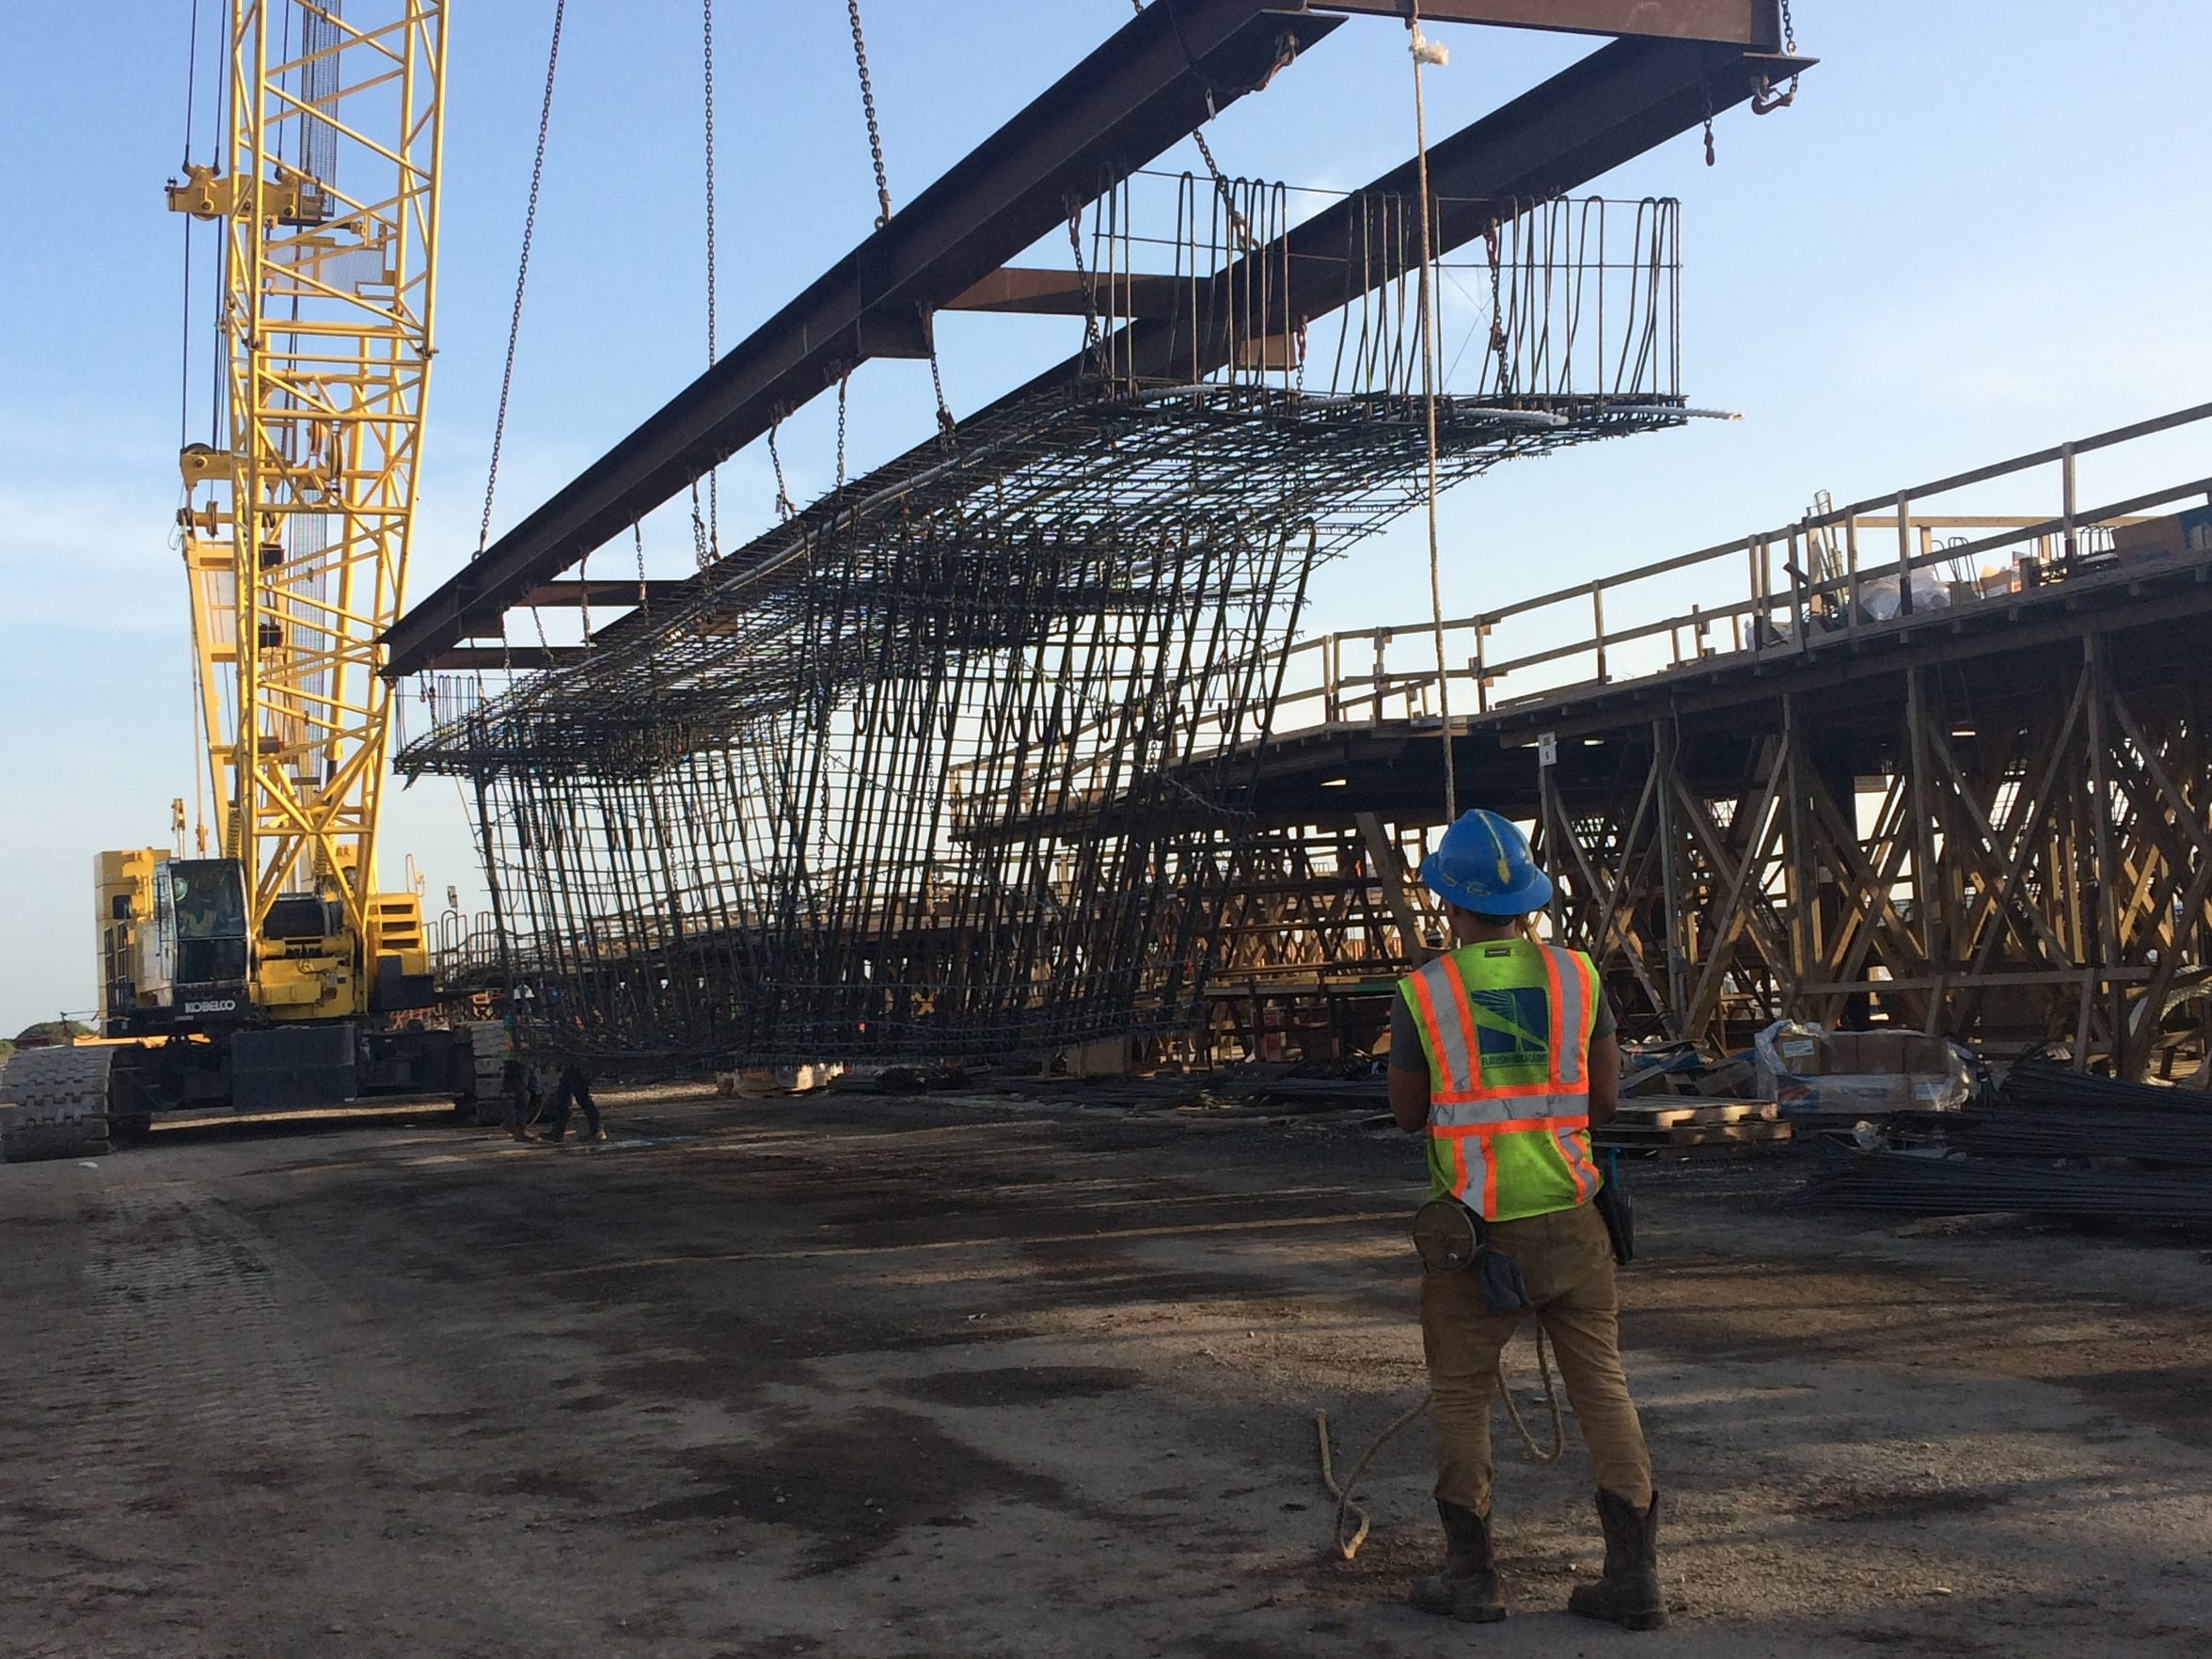 A Flatiron/Dragados worker guides an unfinished bridge segment at the Harbor Bridge pre-cast yard in Robstown. Pieces of what will be the new bridge are being constructed here.